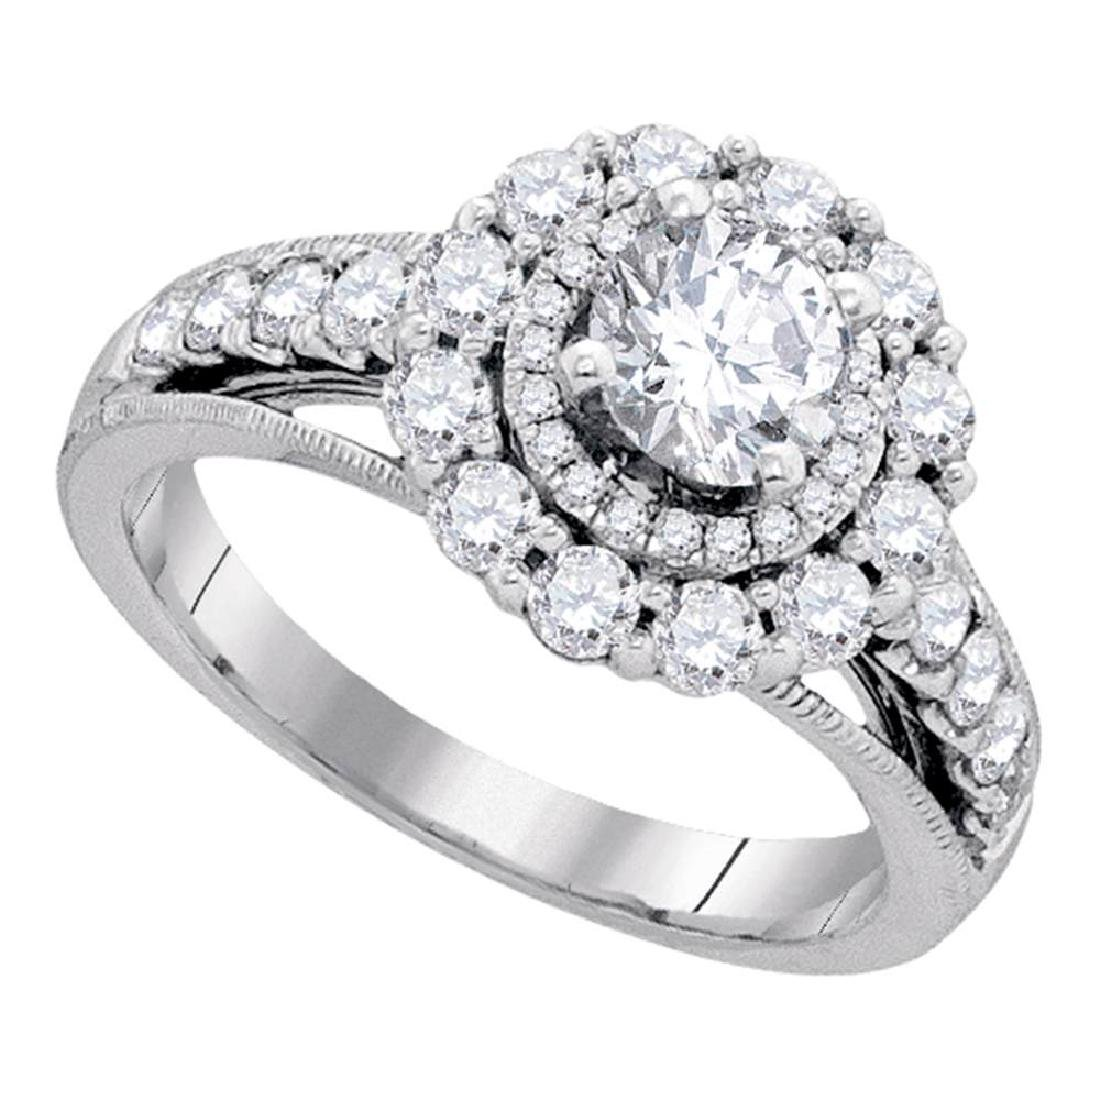 1.75 CTW Diamond Solitaire Bridal Engagement Ring 14KT